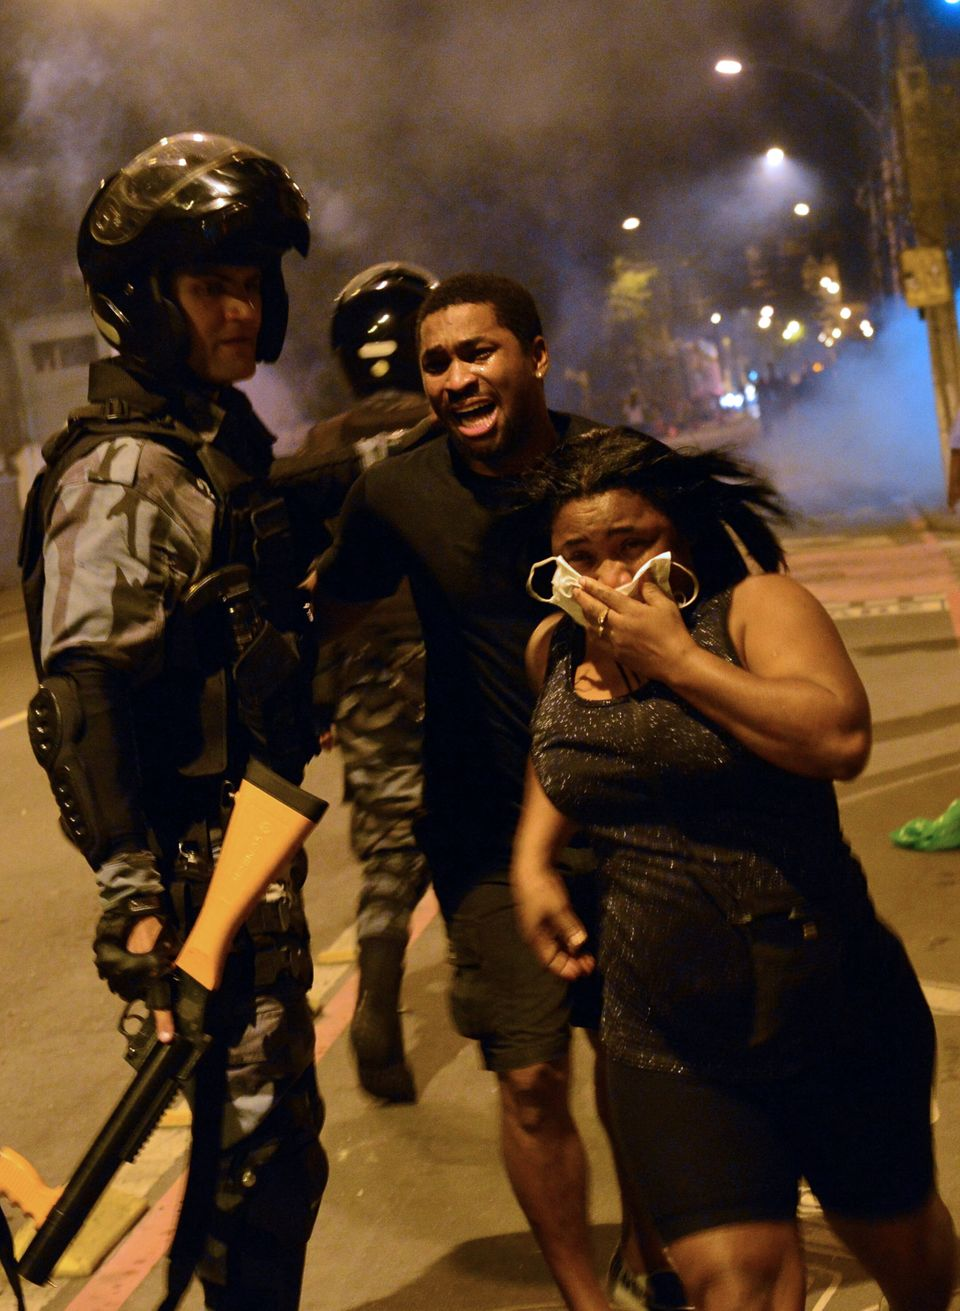 Pedestrians run past riot squad officers during a protest on a street near Maracana stadium in Rio de Janeiro, Brazil on June